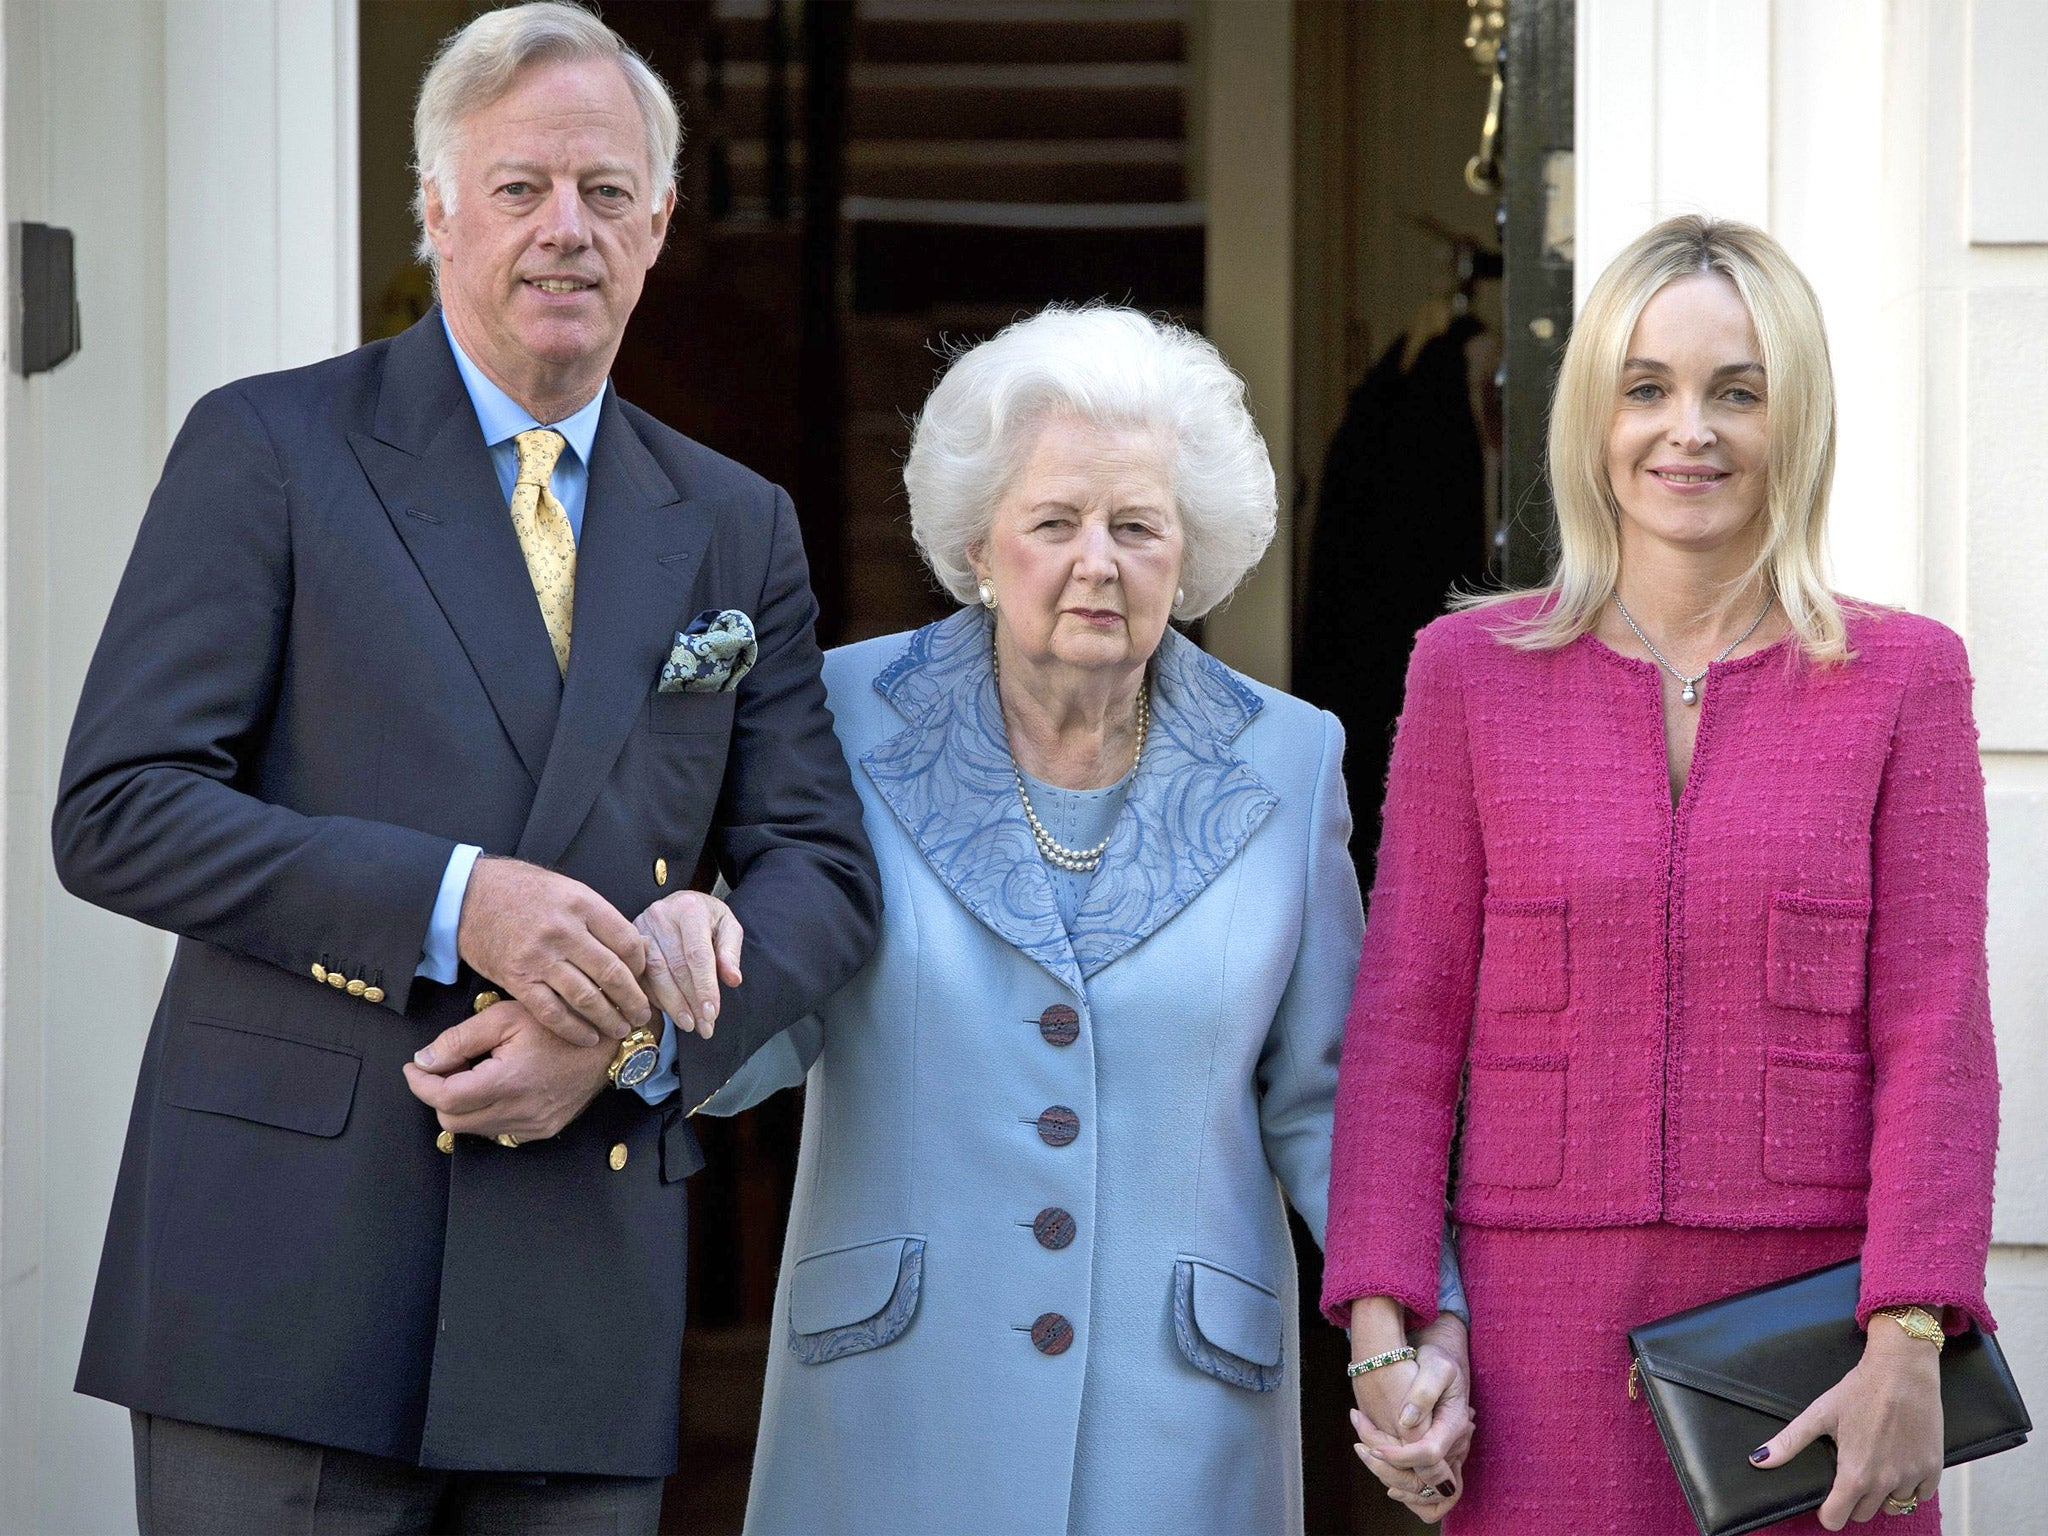 Baroness Thatcher with her son Mark and his wife Sarah in 2012